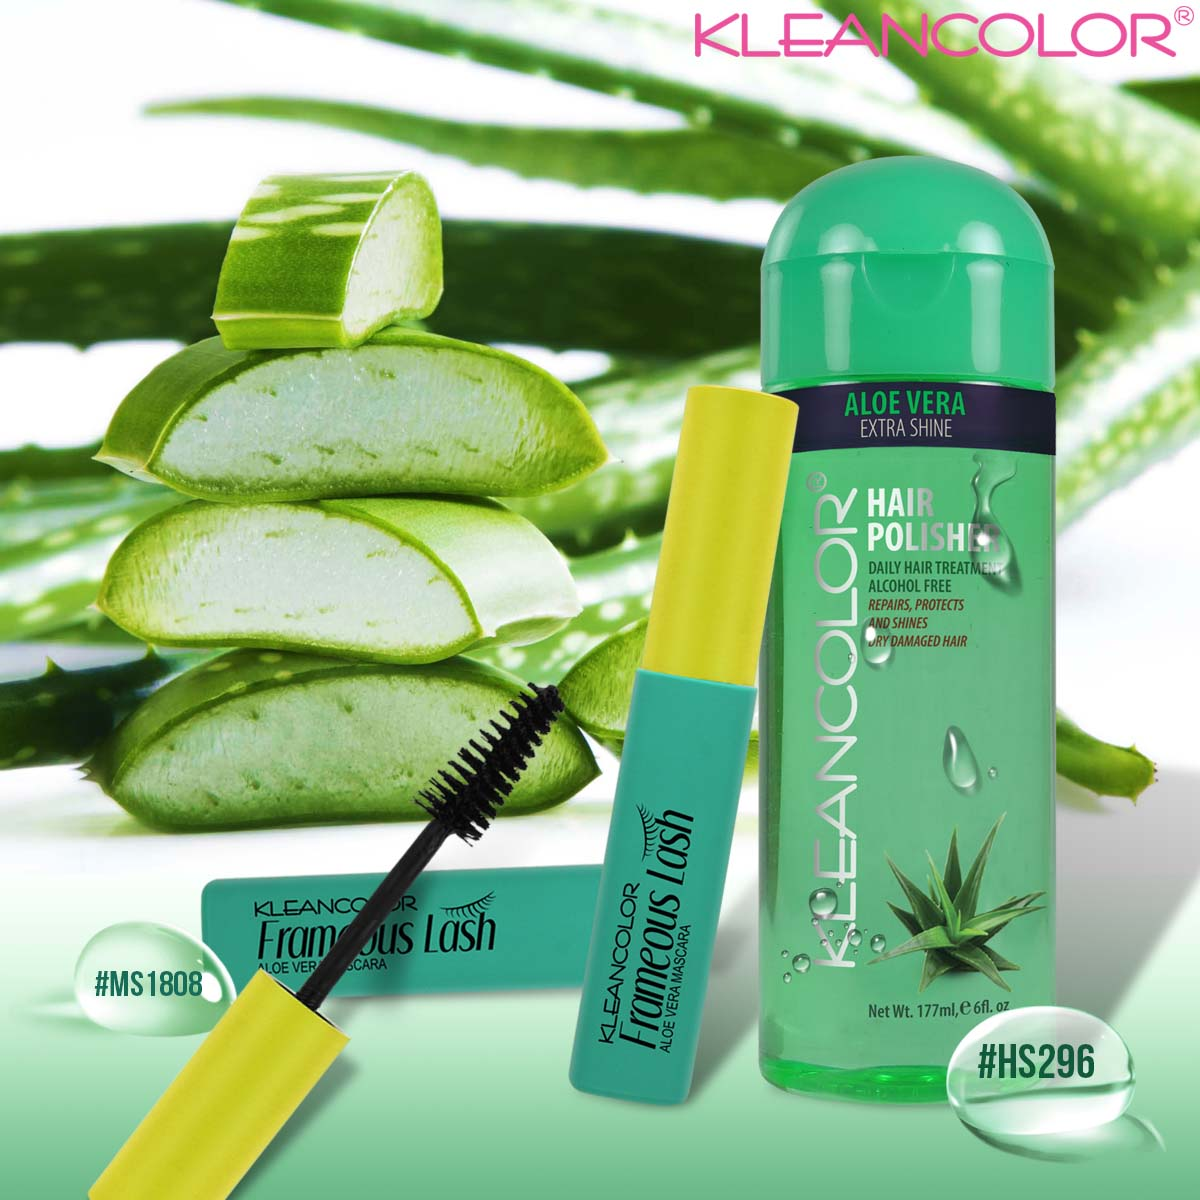 e38daa82056 Nourish lashes with our Aloe Vera infused Frameous Lash Mascara (MS1808)  and replenish dry, damaged hair using our Hair Polisher (HS296) #kleancolor  ...